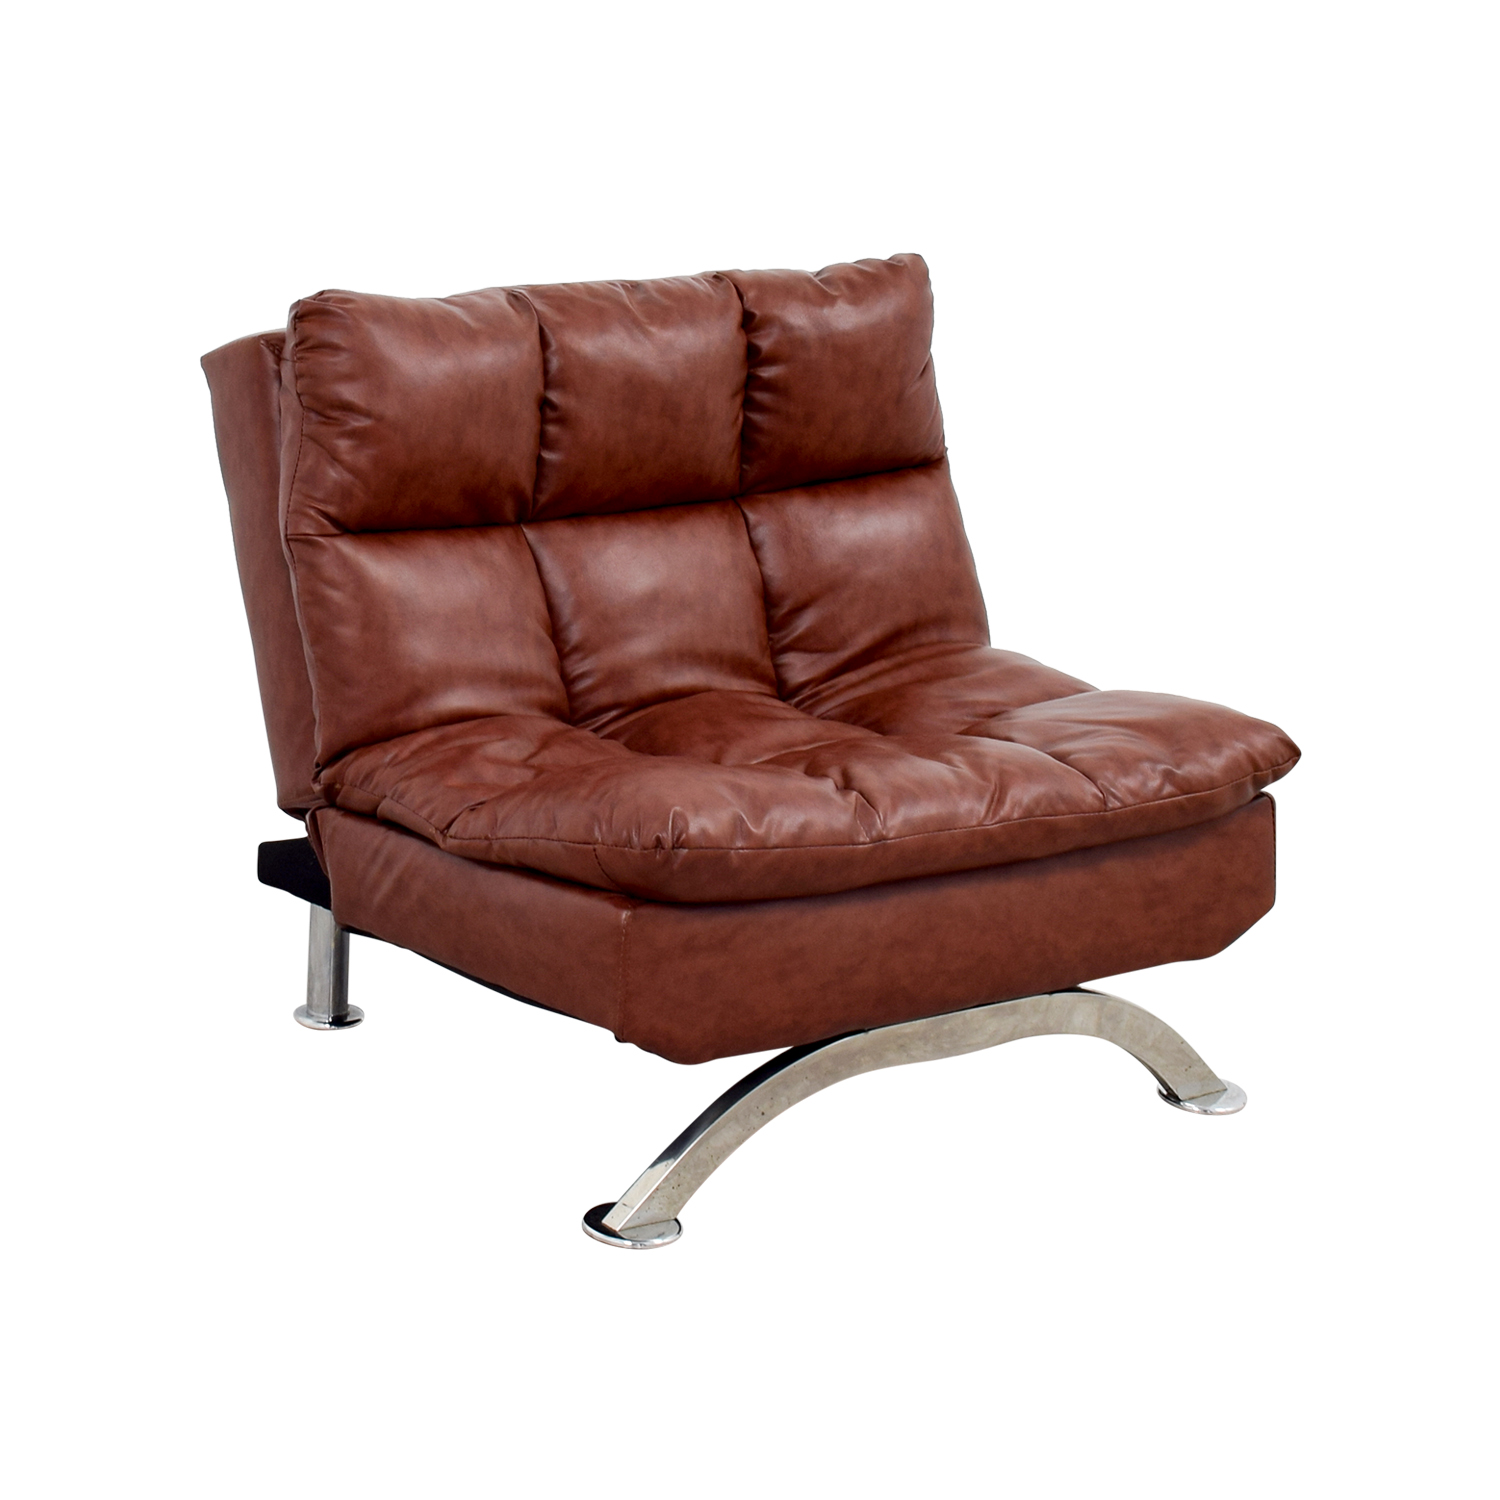 56 Off Wayfair Wayfair Love Brown Leather Tufted